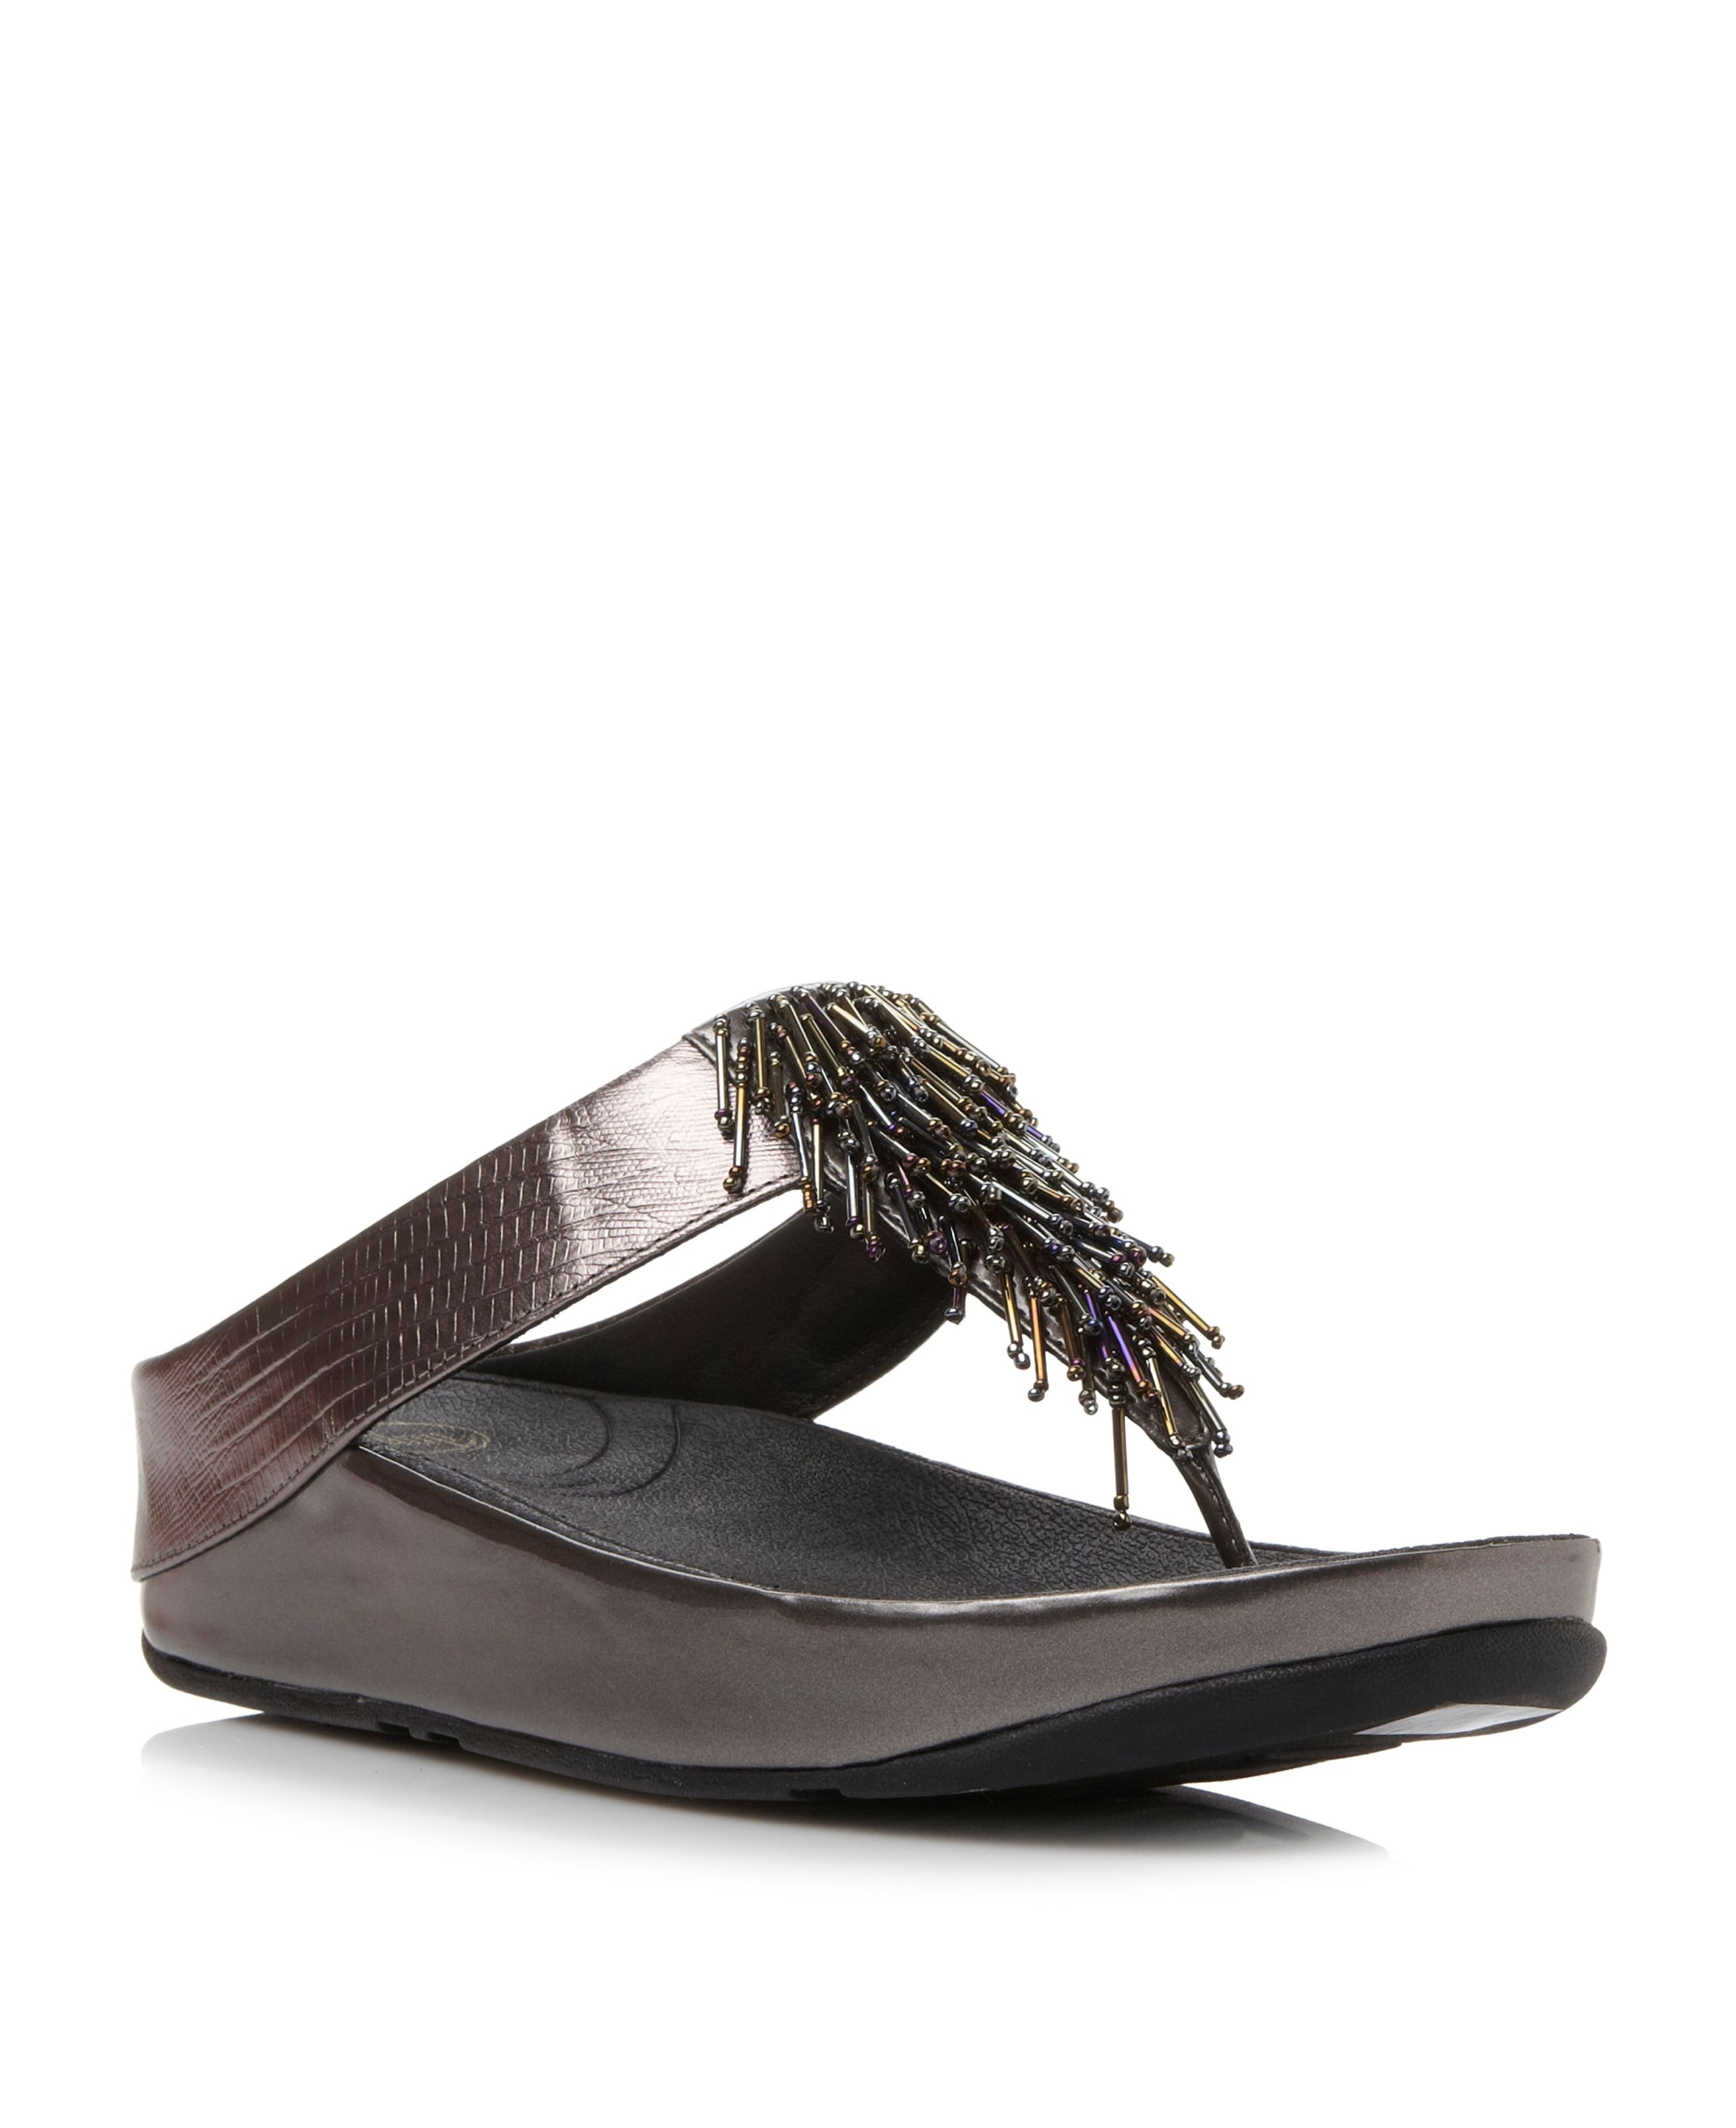 d5f98b27576796 FitFlop Cha Cha Beaded Fringe Toe Post Sandals - House of Fraser